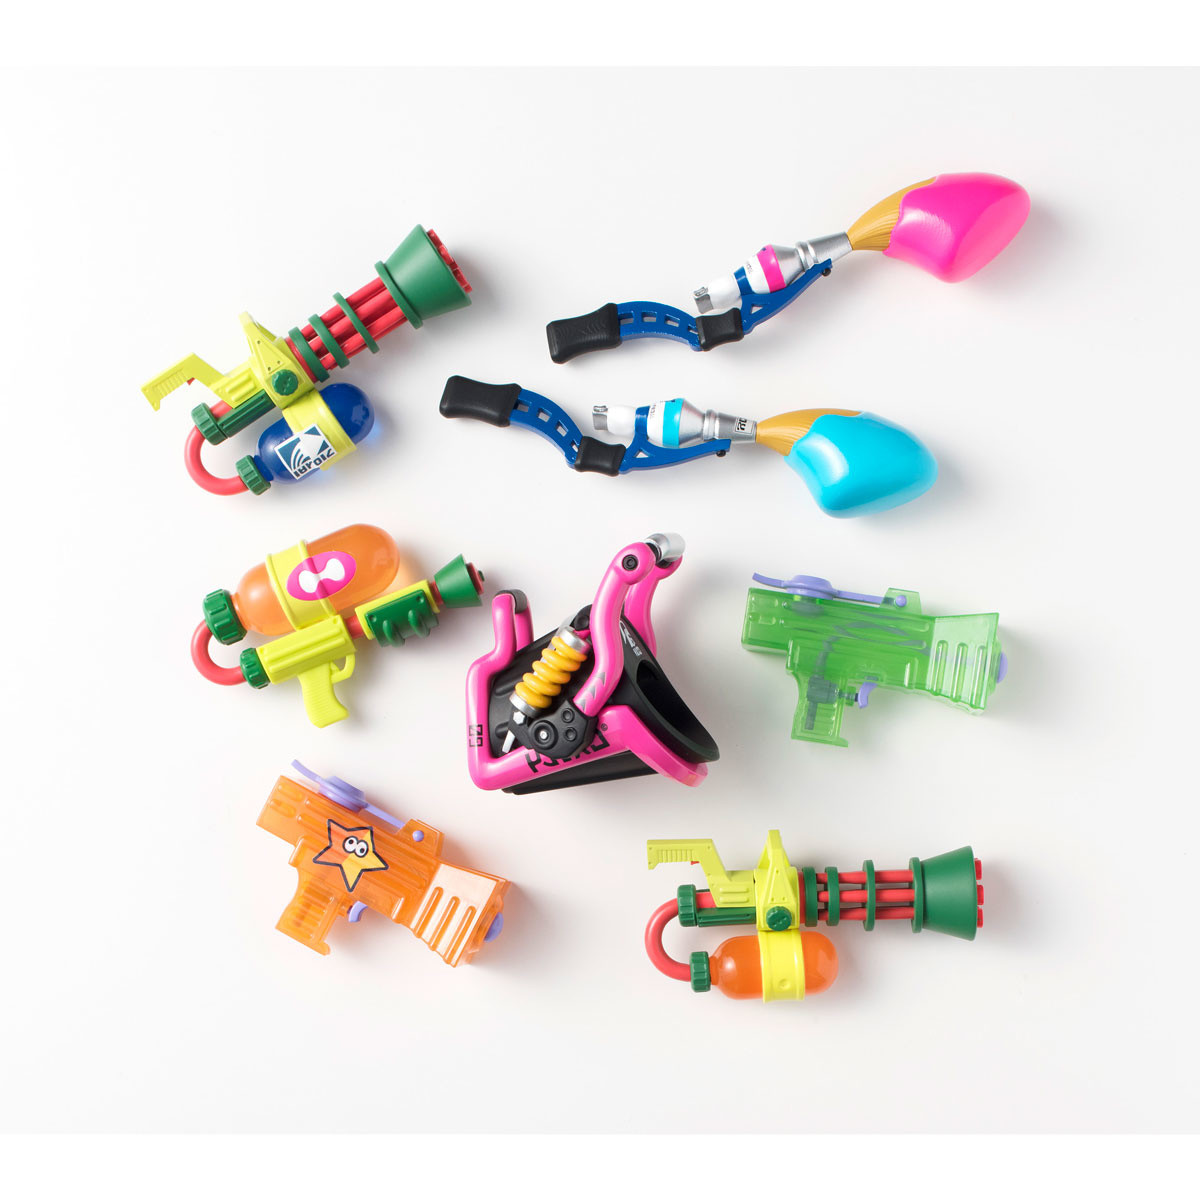 Splatoon Weapons Collection 2 Tokyo Otaku Mode Shop